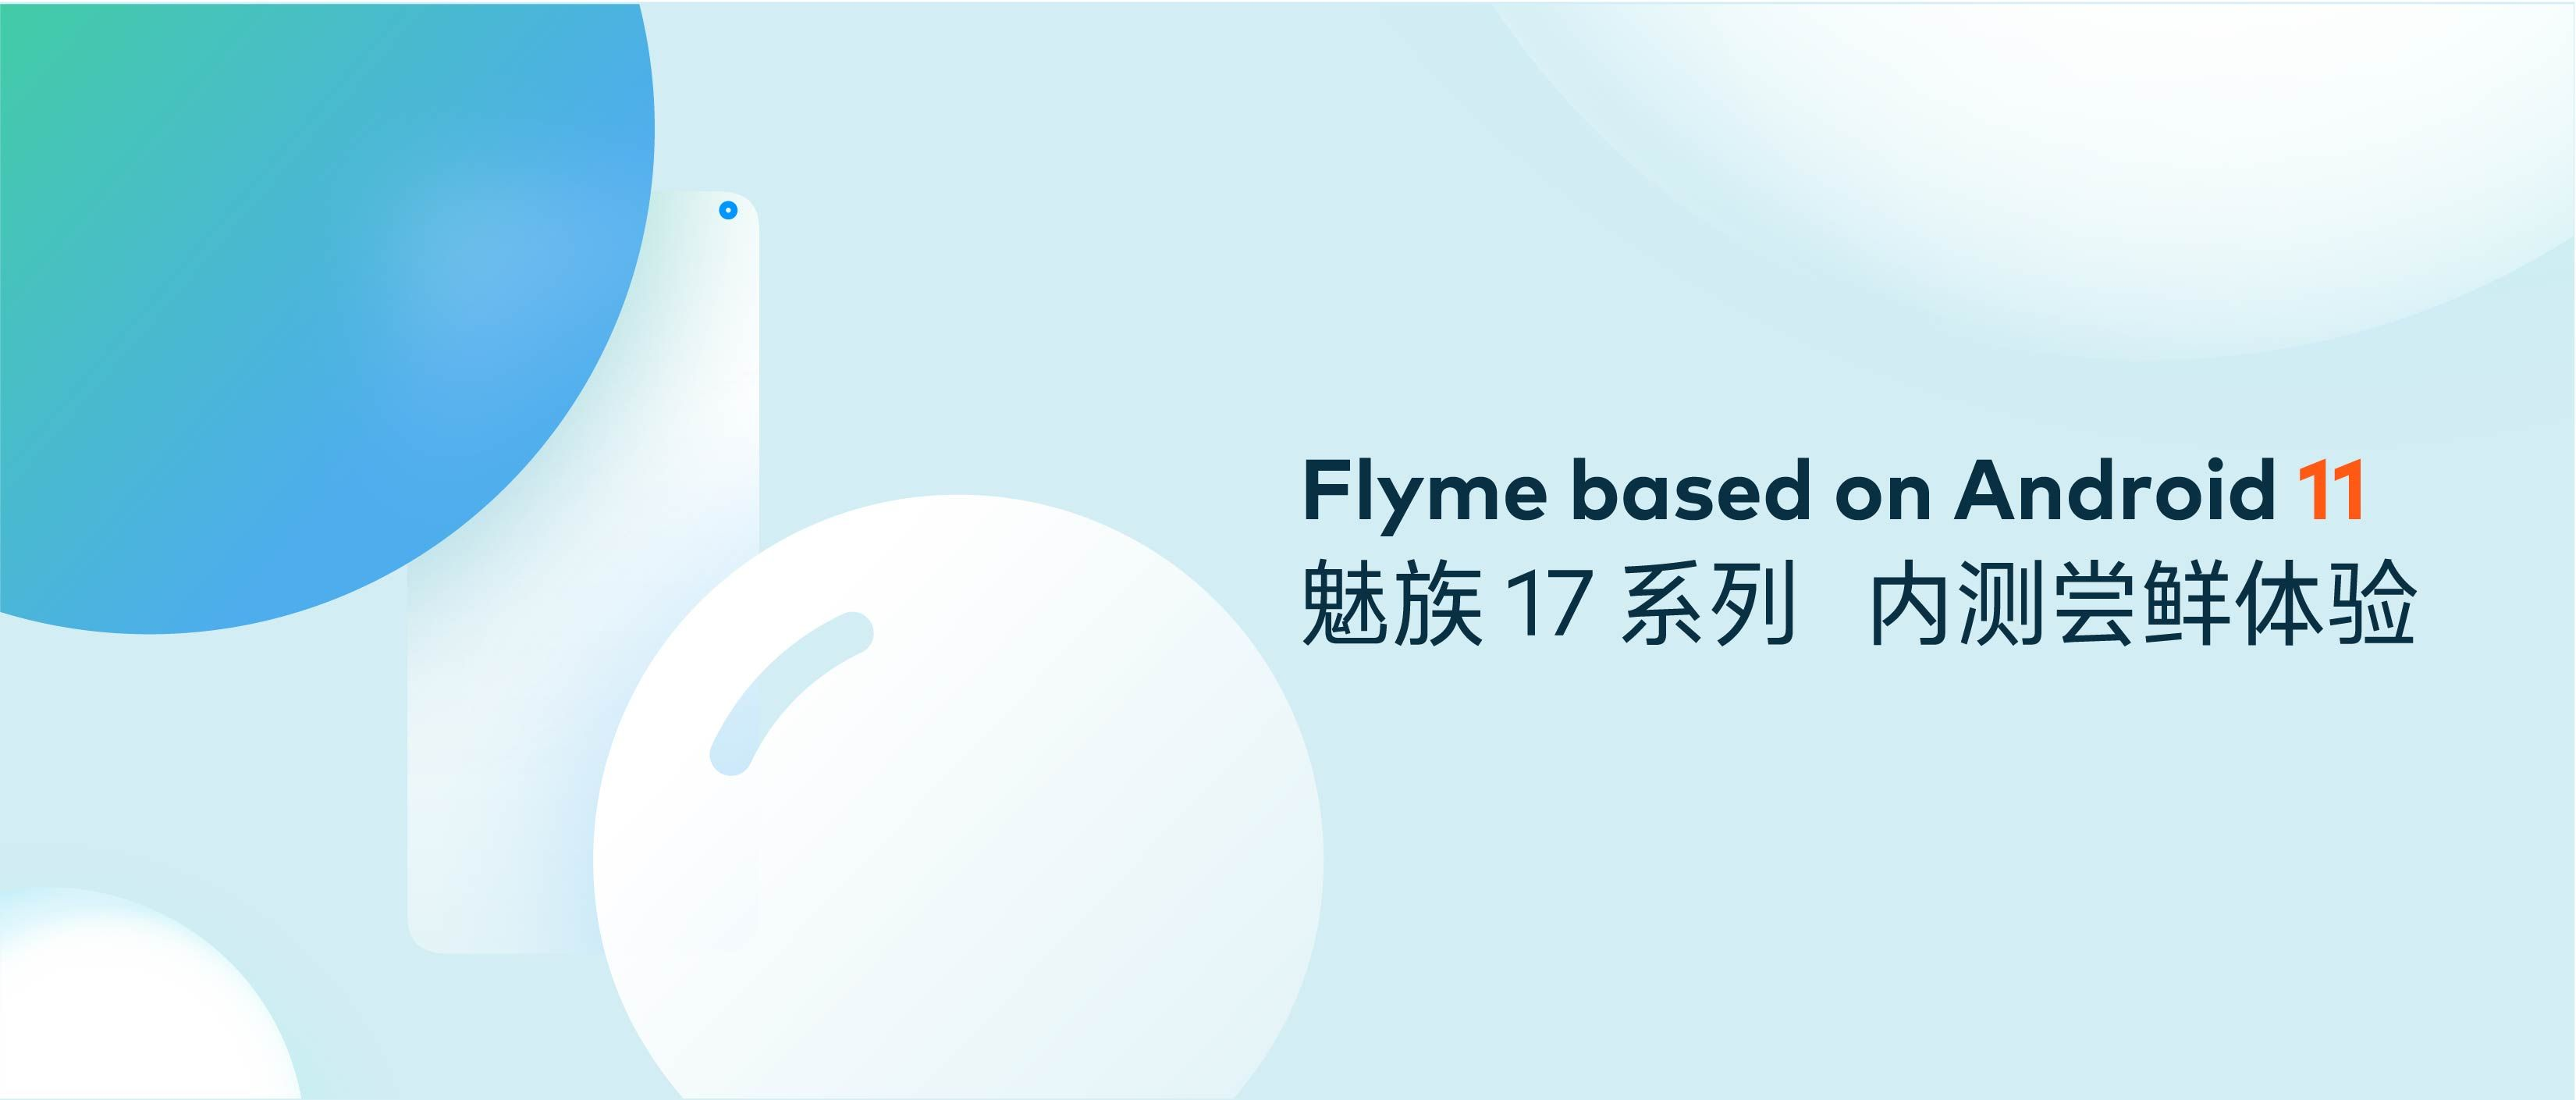 Meizu 17とMeizu 17 Pro用Flyme based on Android 11のClosed Beta募集を開始